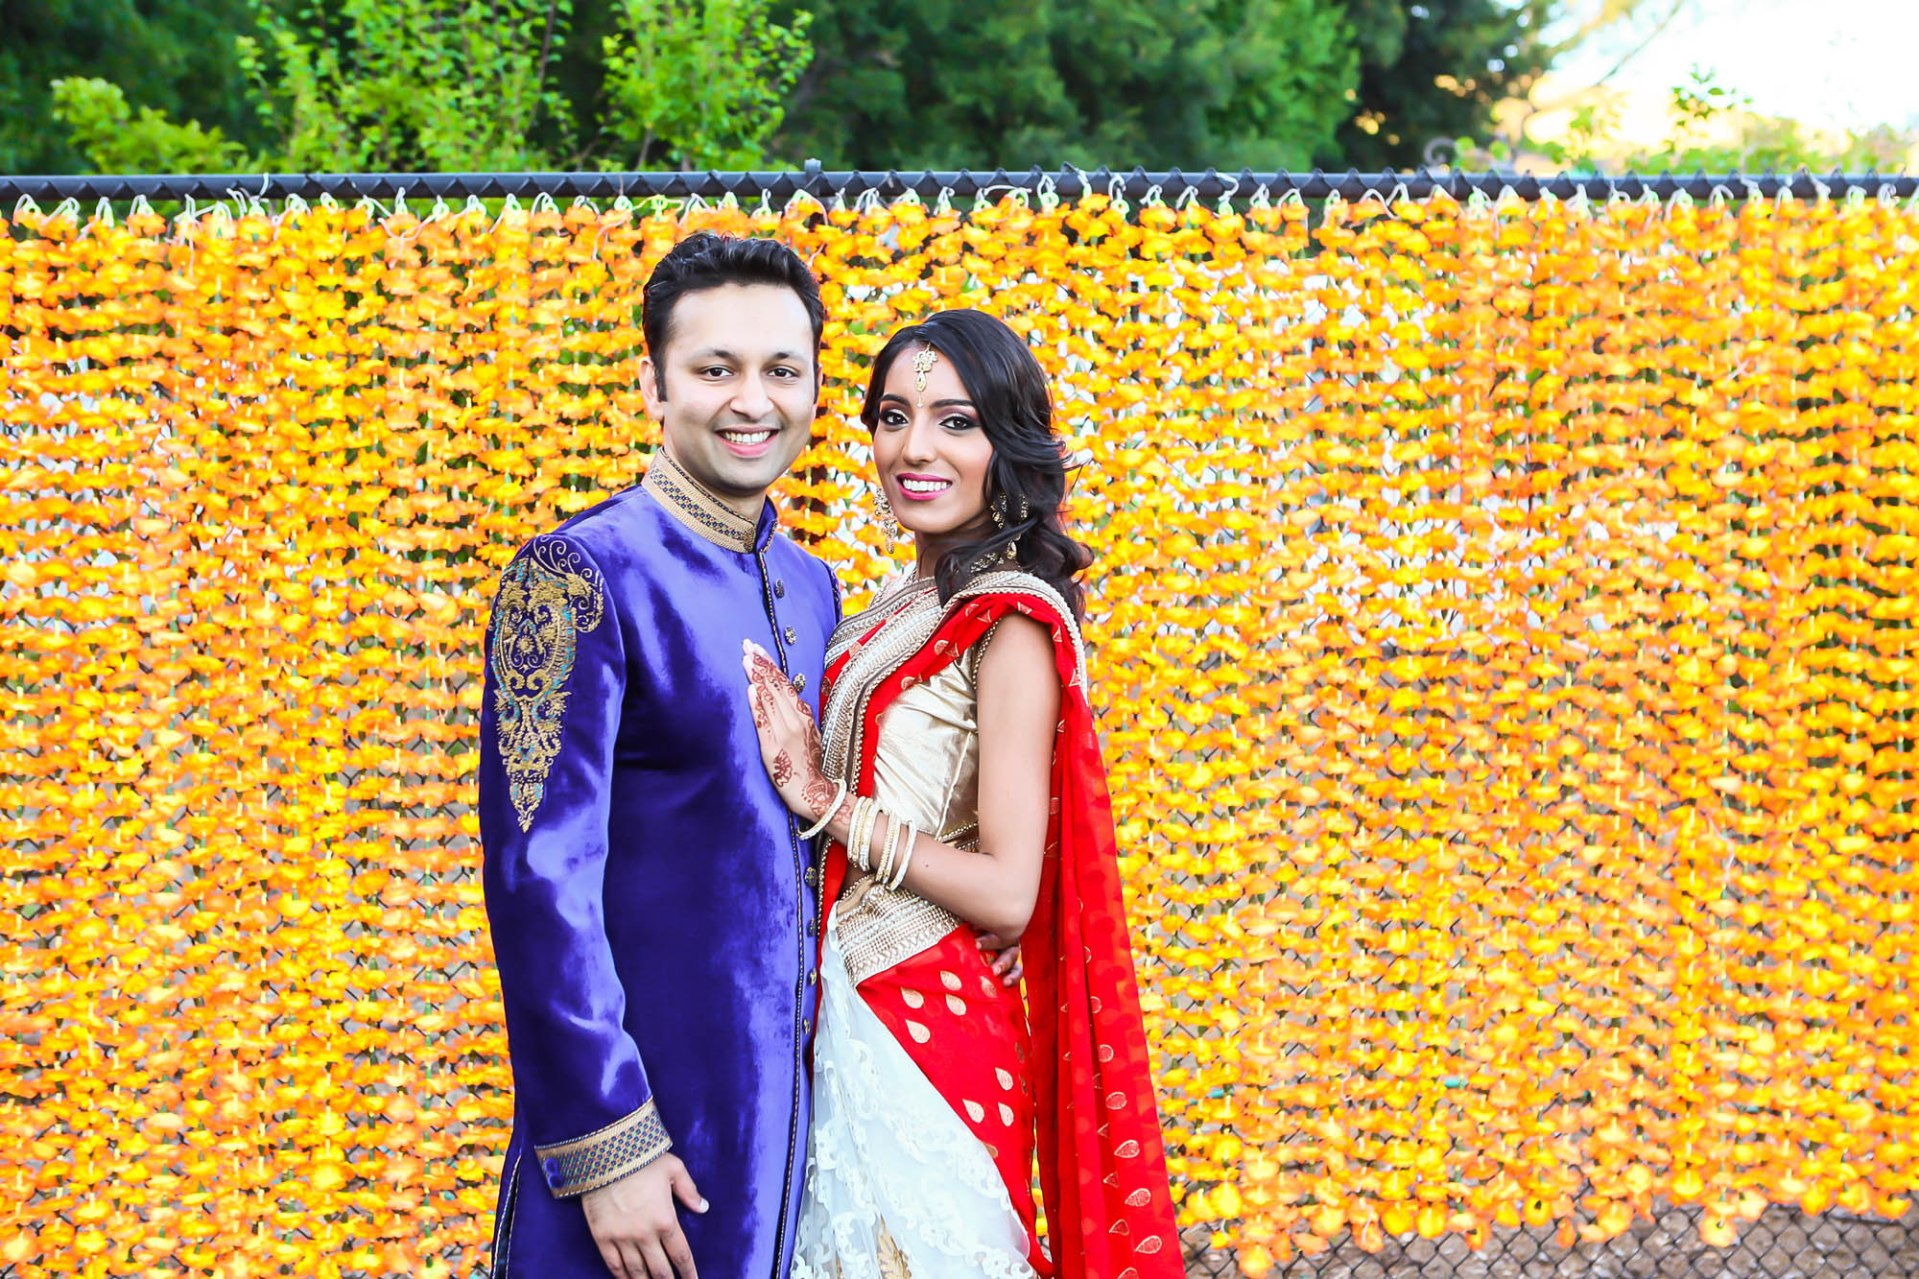 An Indian bride and groom wearing traditional clothes, smiling and posing for the camera